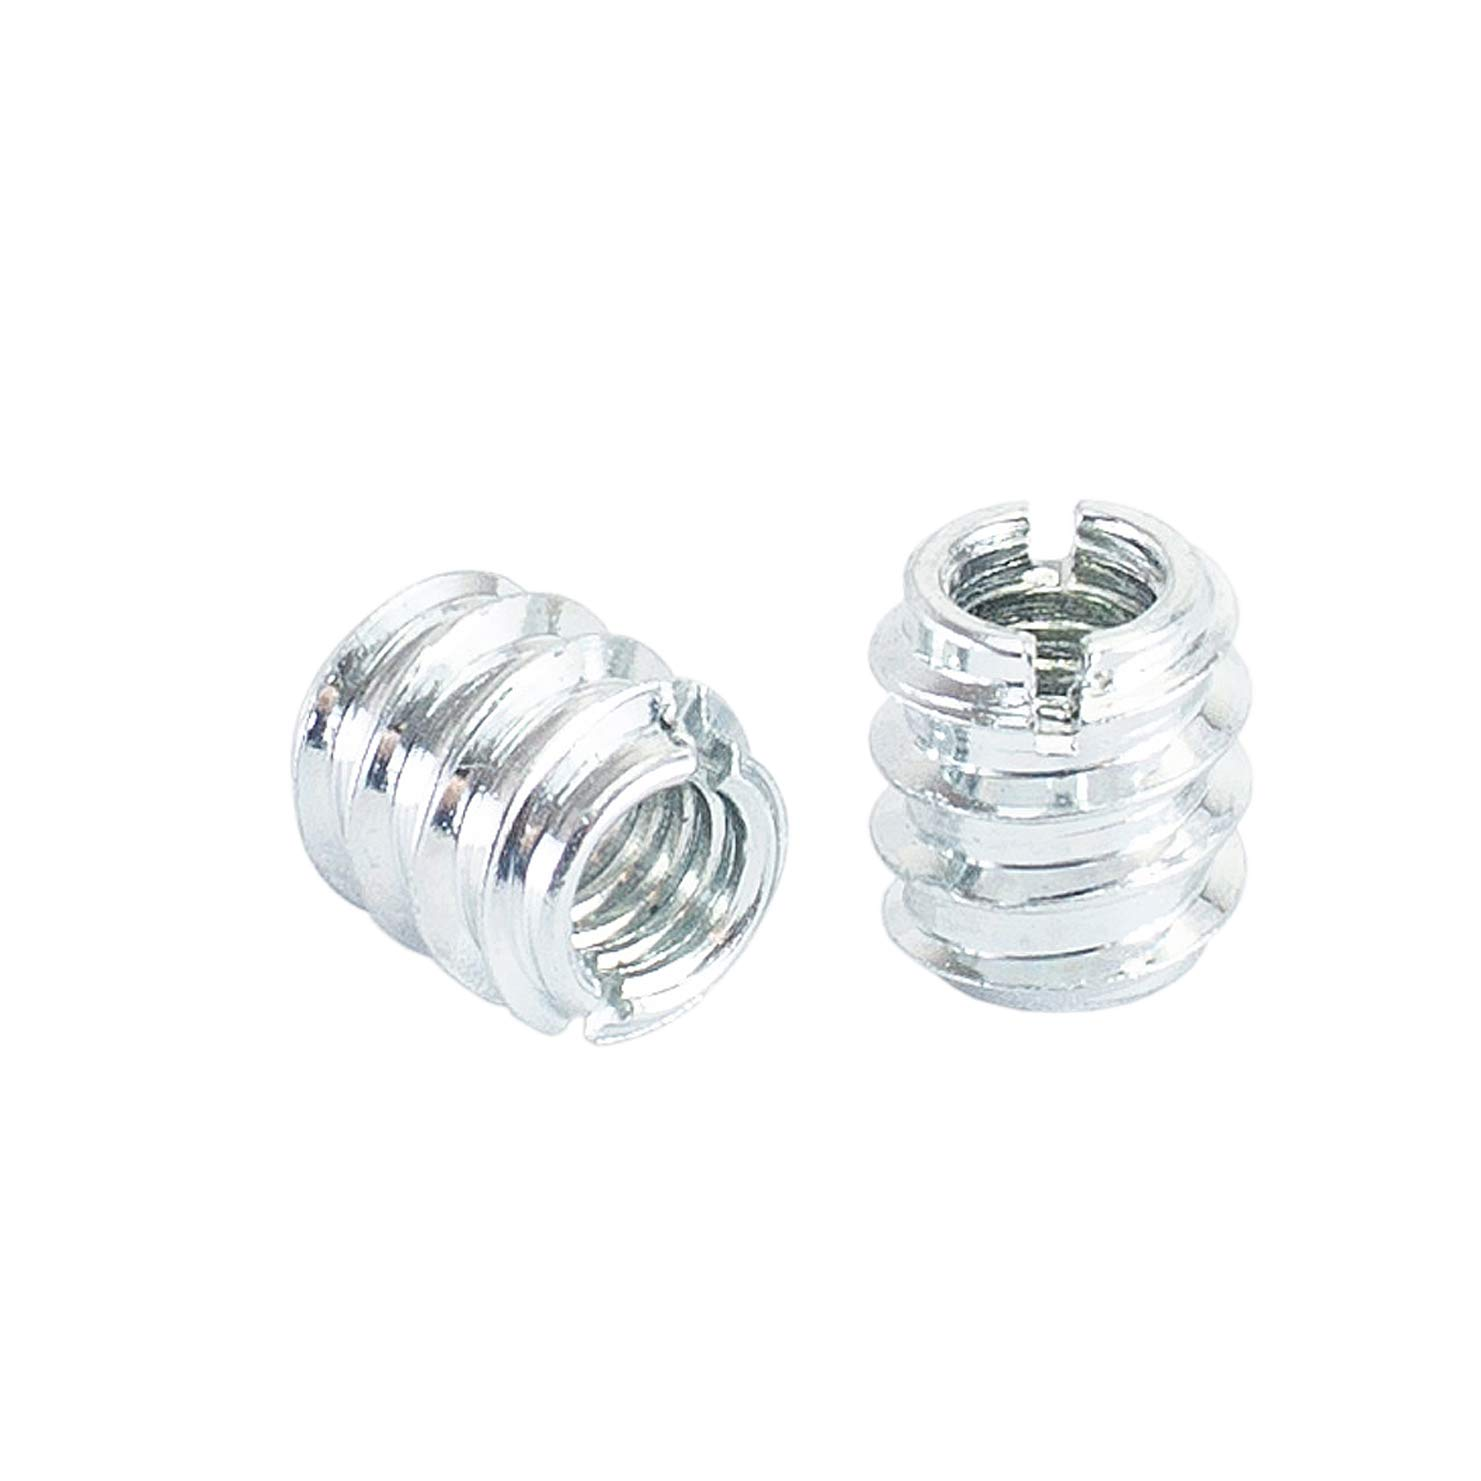 50 Pack POWERTEC QTI1003 5//16-18 Threaded Insert for Wood Superior Fastening Zinc Plated Screw-in Nut for Woodworking for Hard and Soft Wood and More a Woodworking Shop Essential